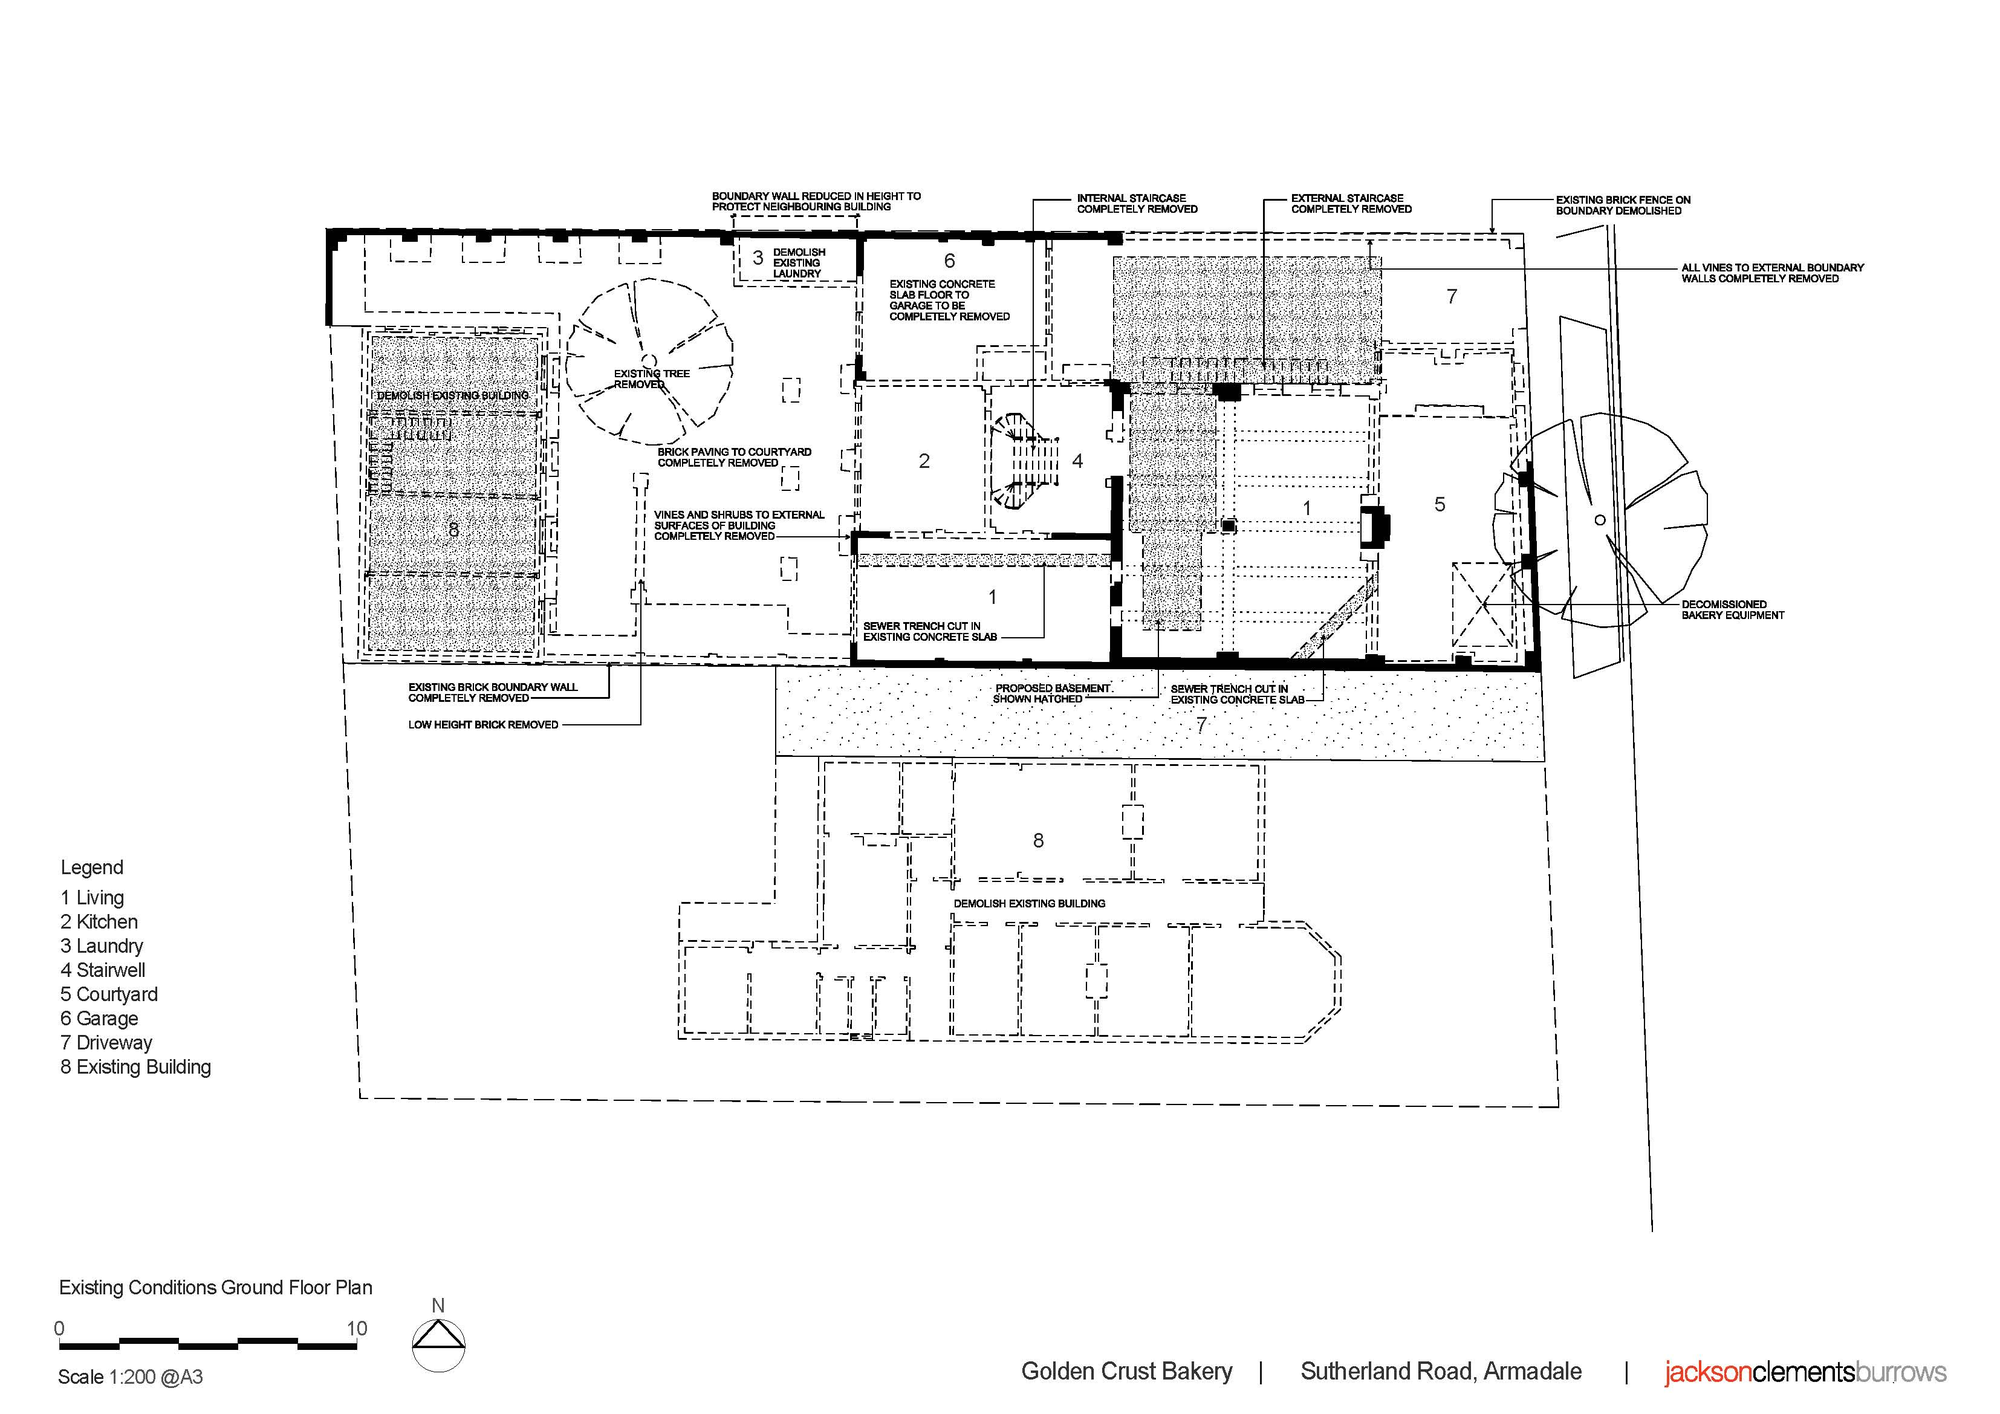 Floor Plan For Bakery Shop Architecture Photography Golden Crust Bakery Jackson